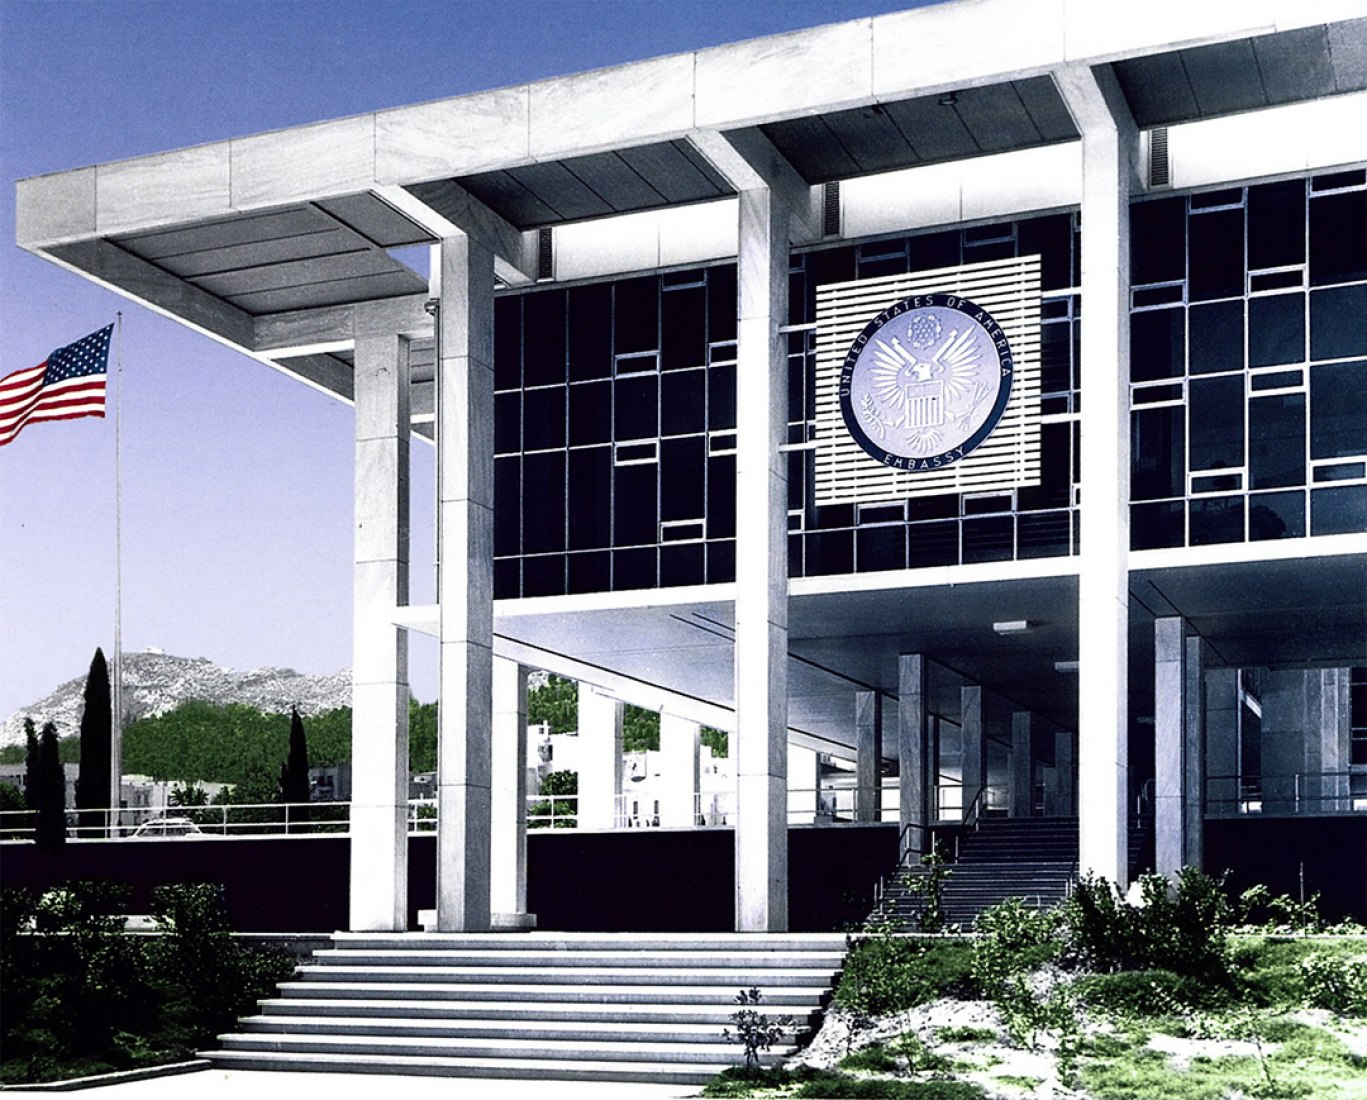 Photo of the Embassy of the United States in Athens, Greece (Photo courtesy U.S. Department of State Bureau of Overseas Buildings Operations).